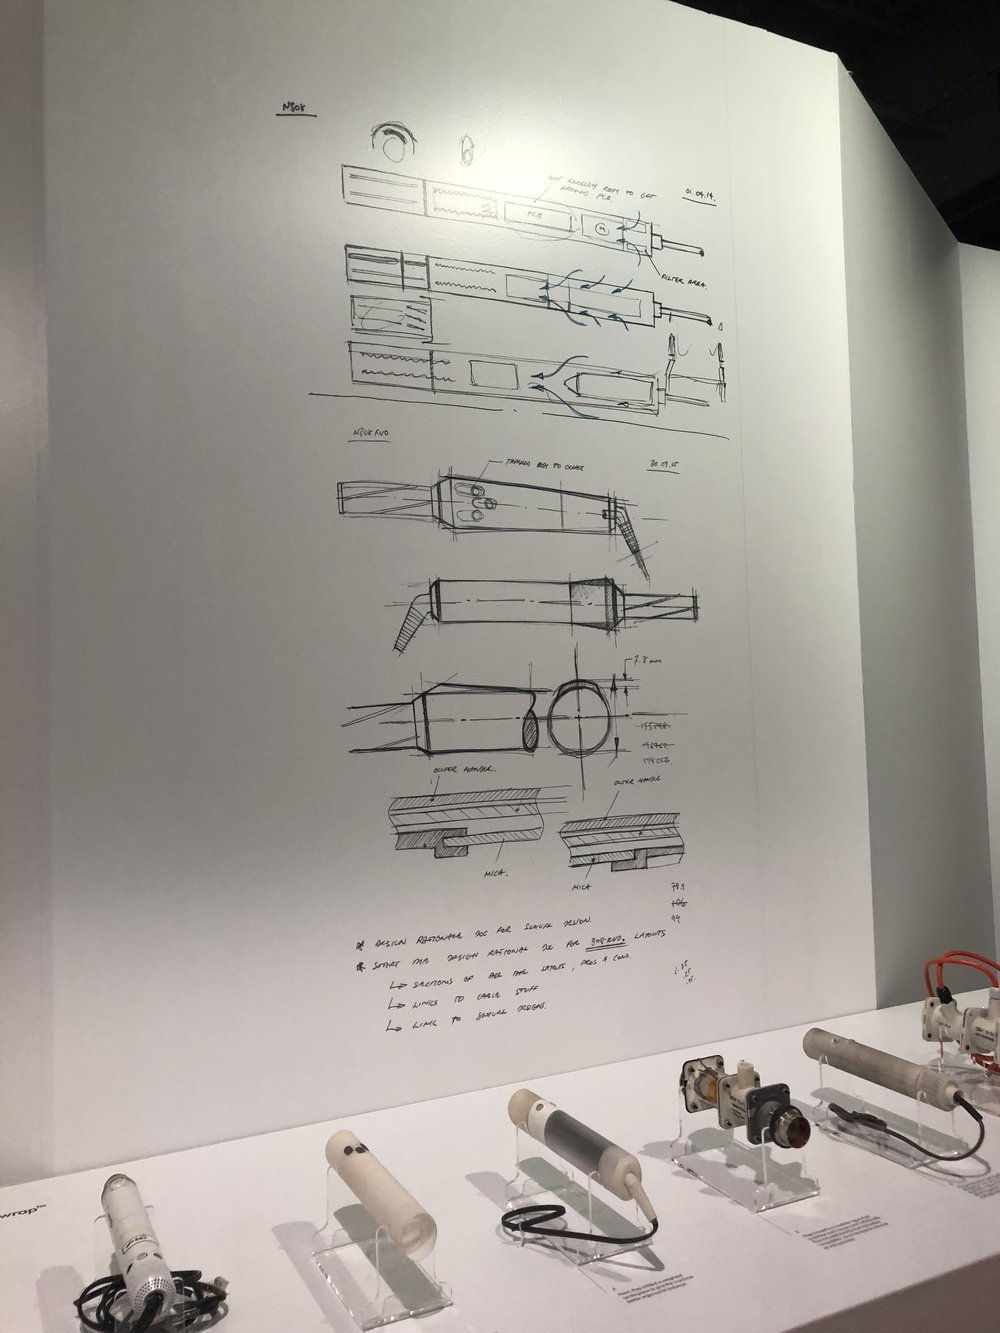 Original design drawings for the AirWrap